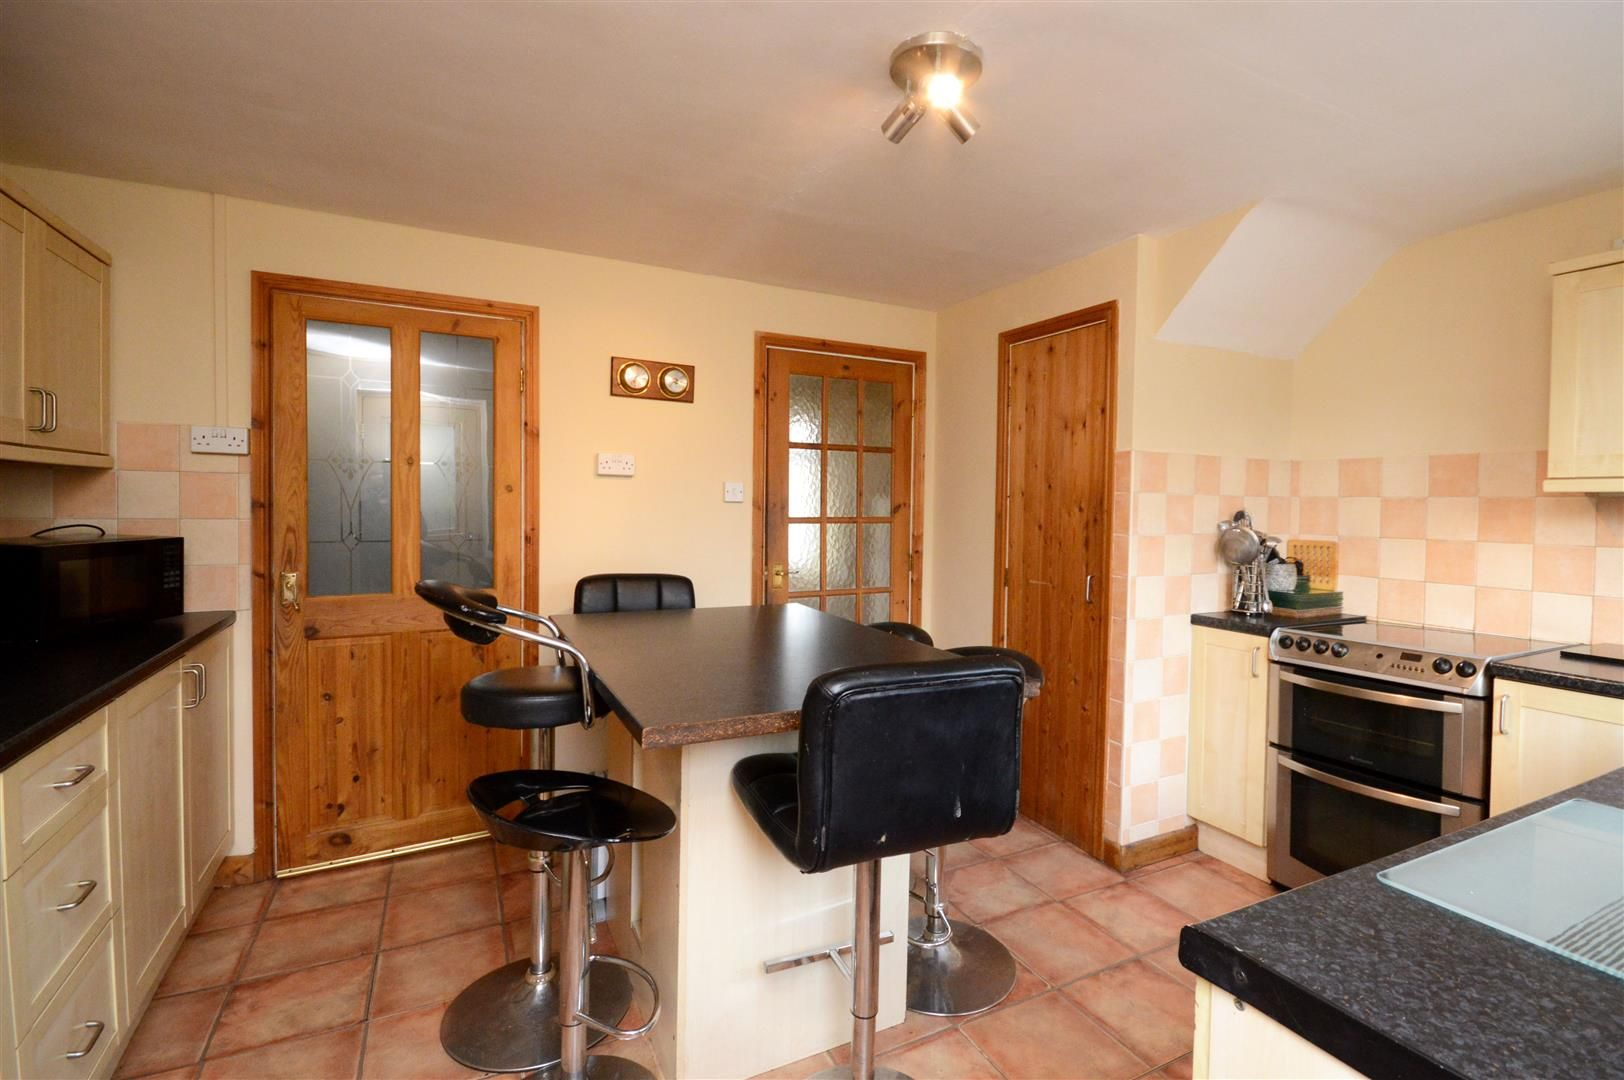 3 bed terraced for sale in Weobley 3